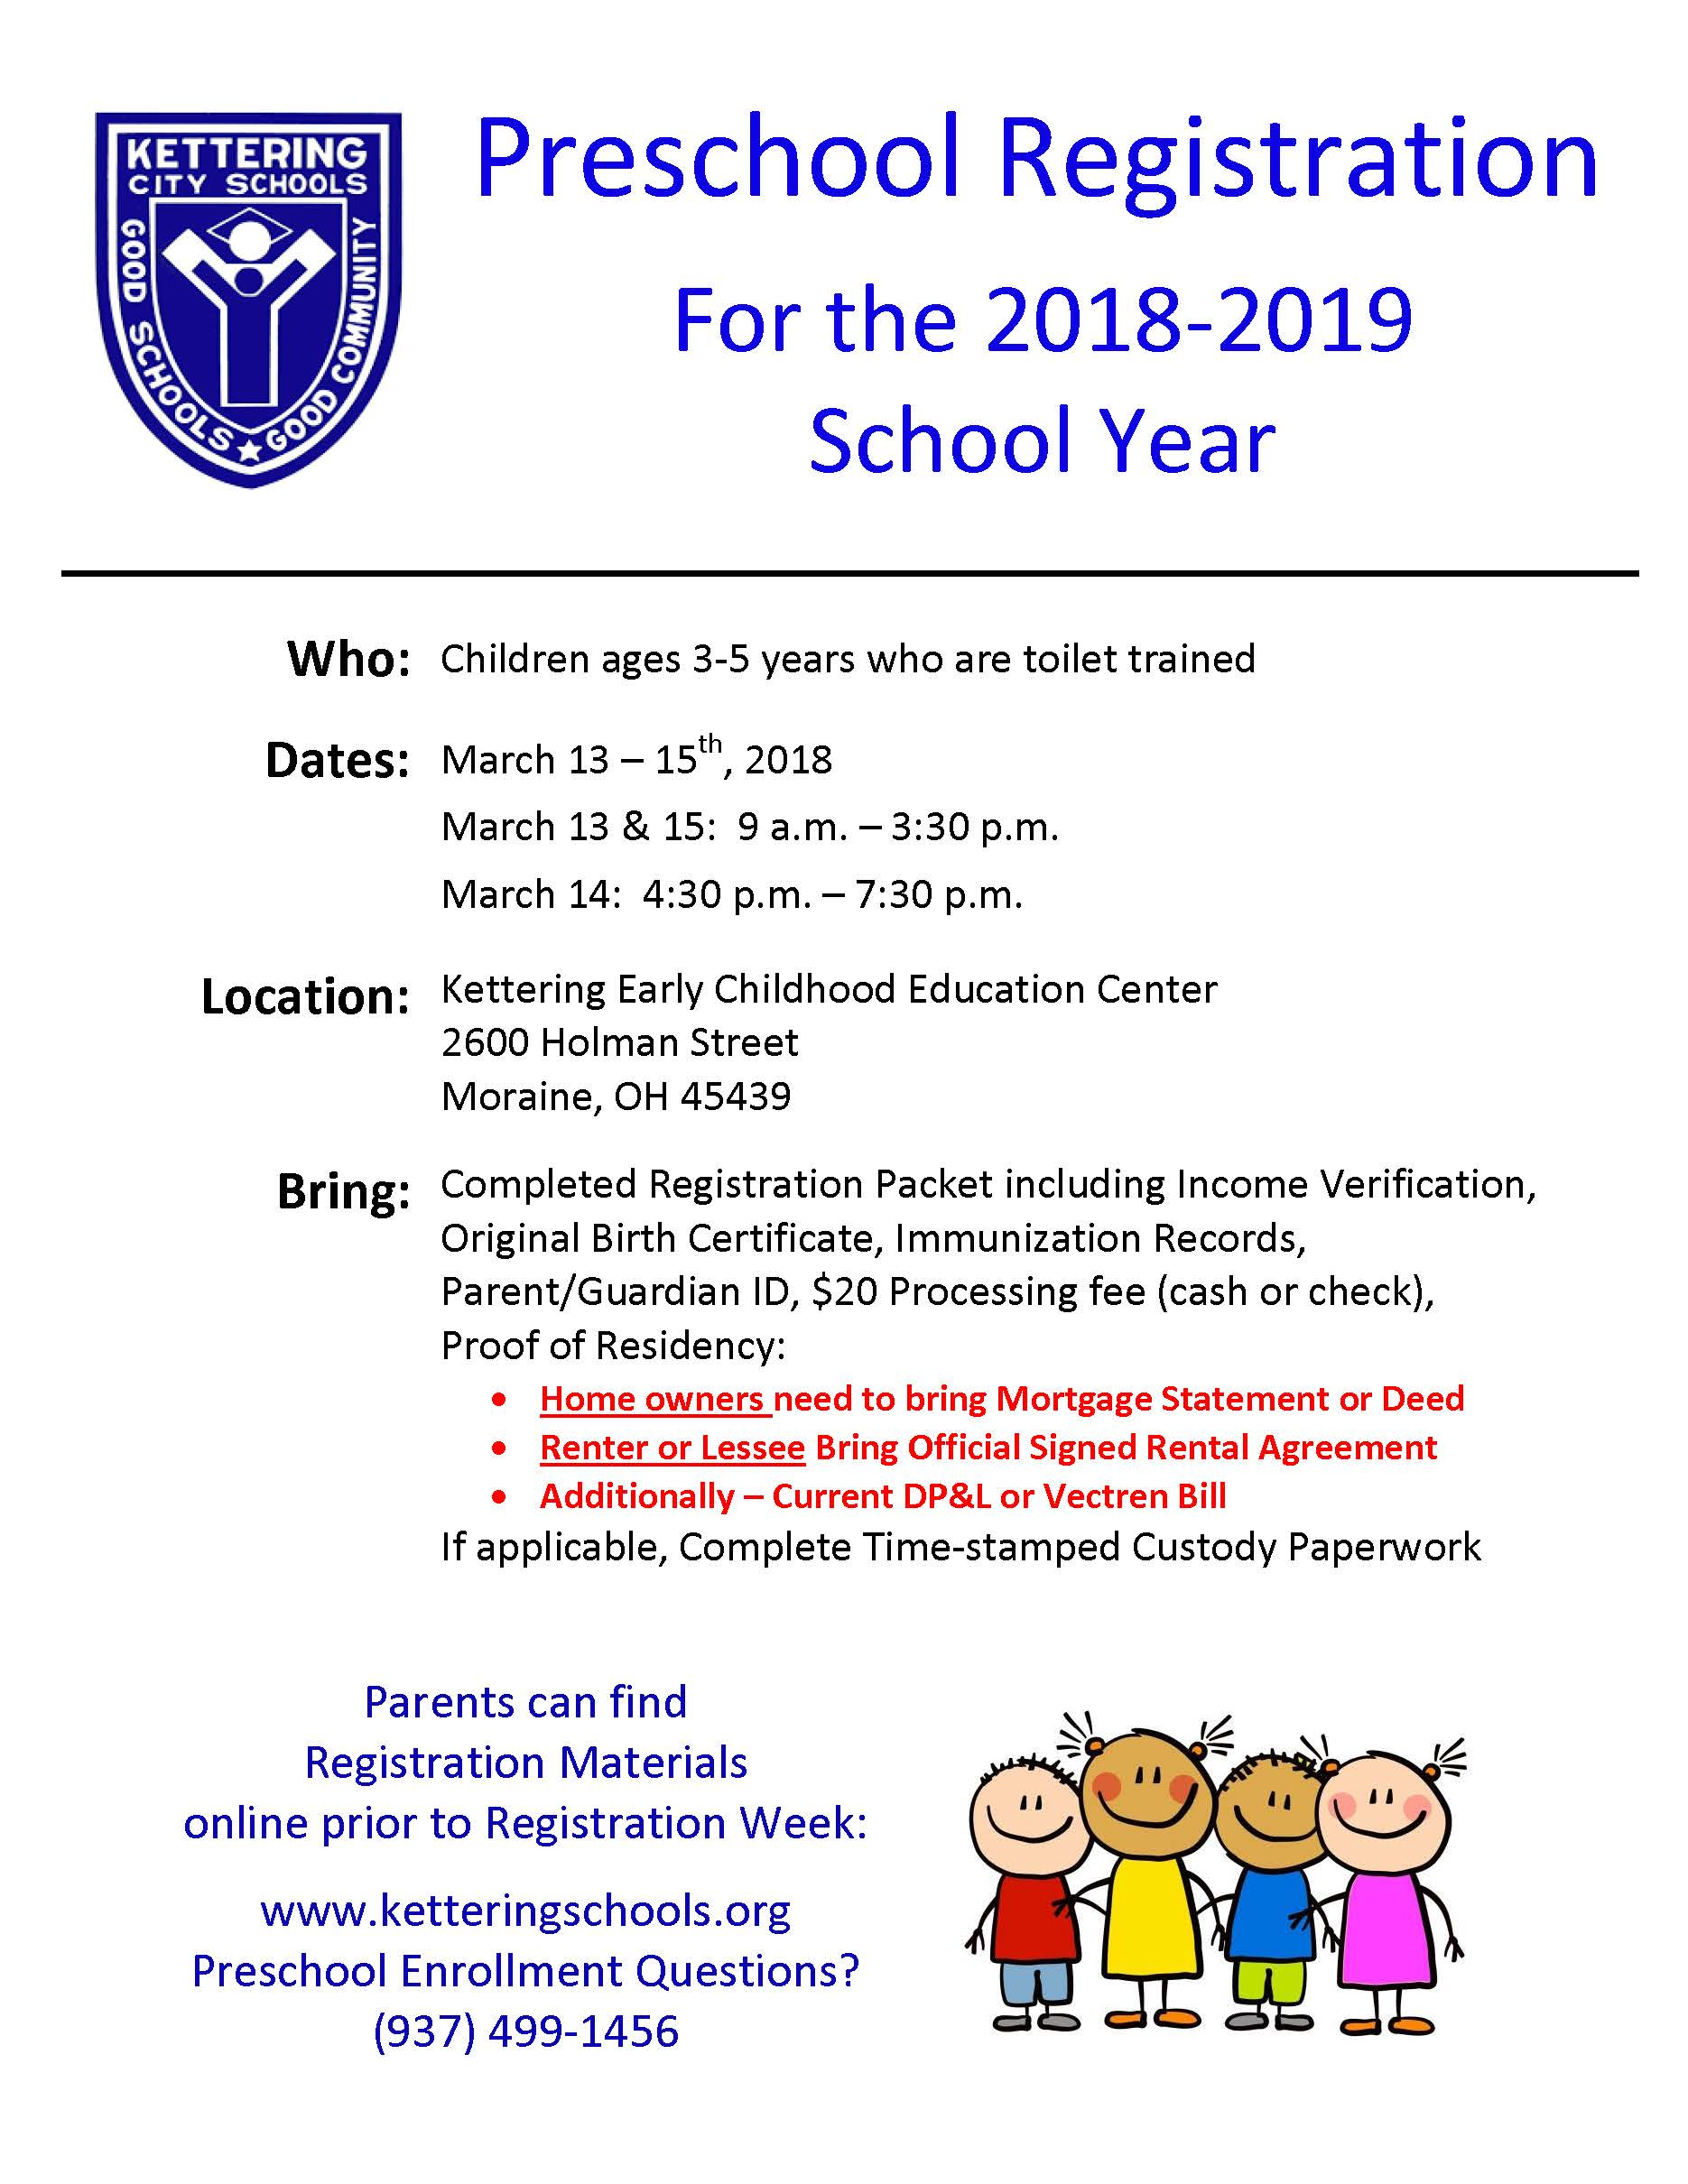 Preschool Registration March 13-15